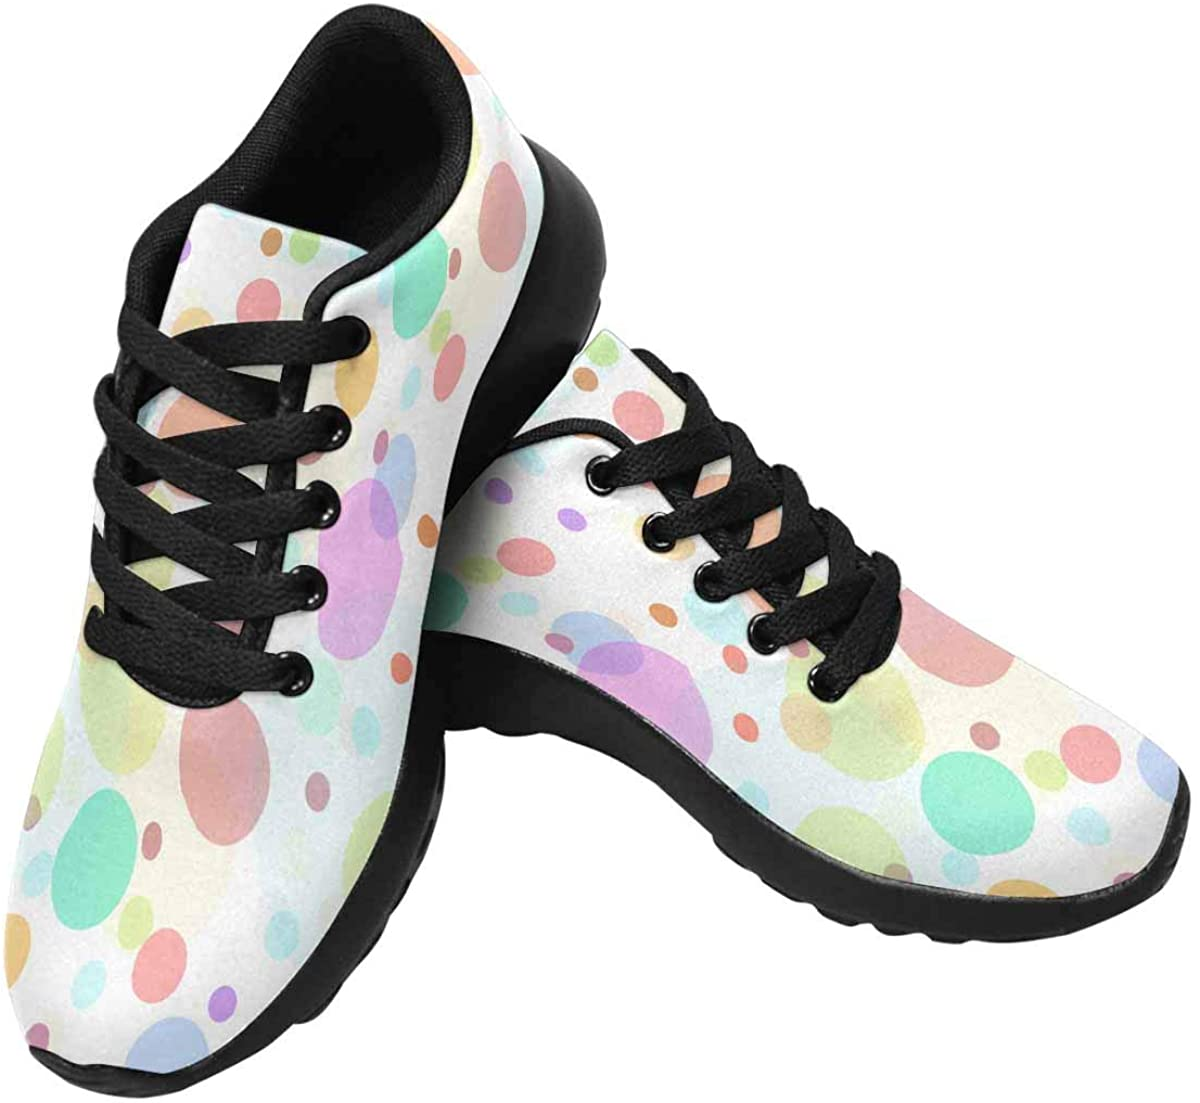 InterestPrint Multi-Colored Sweets Women's Running Shoes - Casual Breathable Athletic Tennis Sneakers